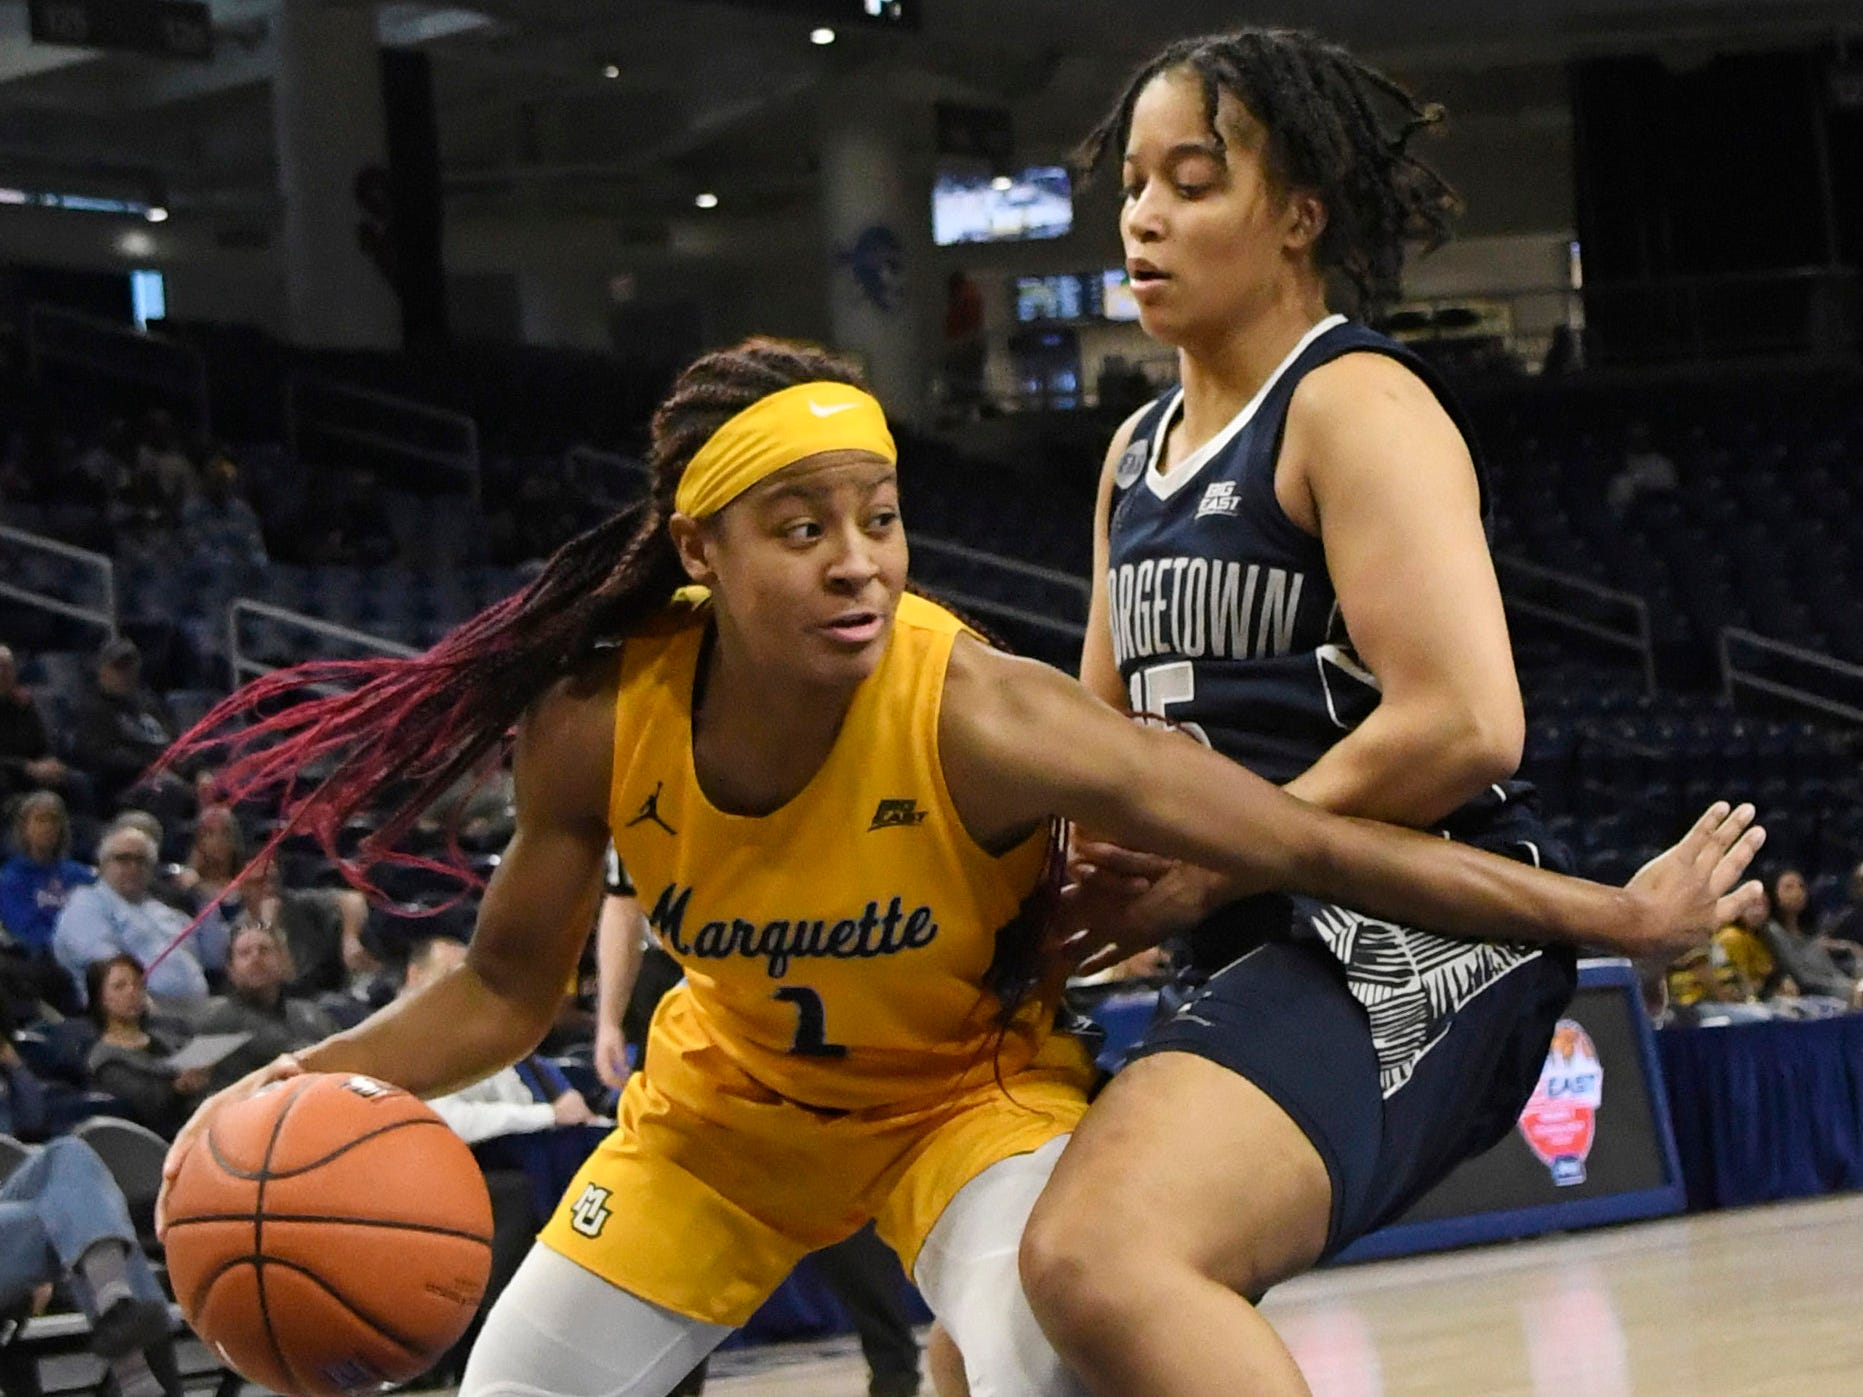 Marquette guard Danielle King drives to the basket and tries to get past Georgetown's Mikayla Venson.